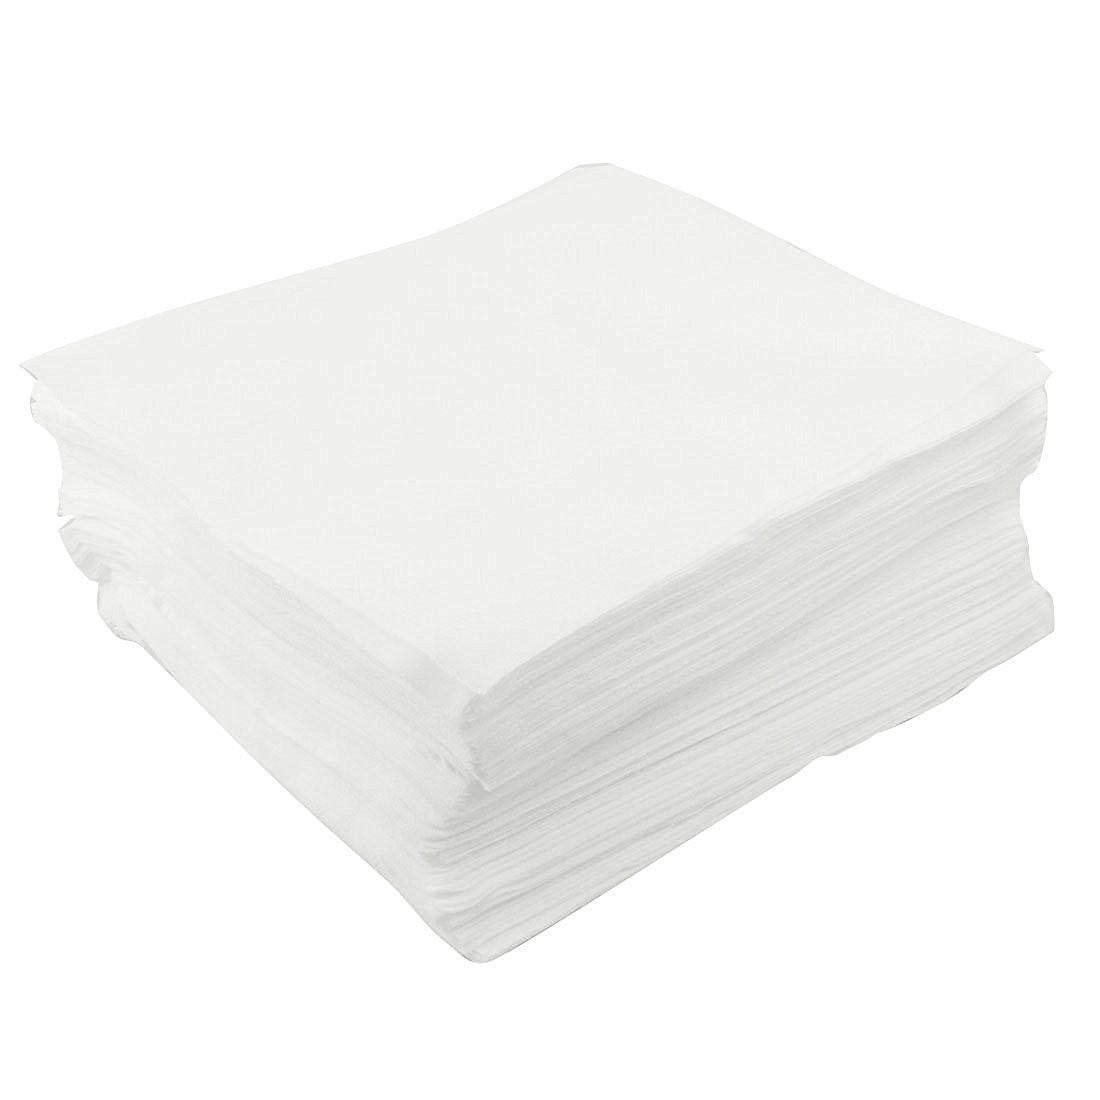 Buy the Cleanroom Wipes 100% Polyester Double Knit Cloth Printhead ...